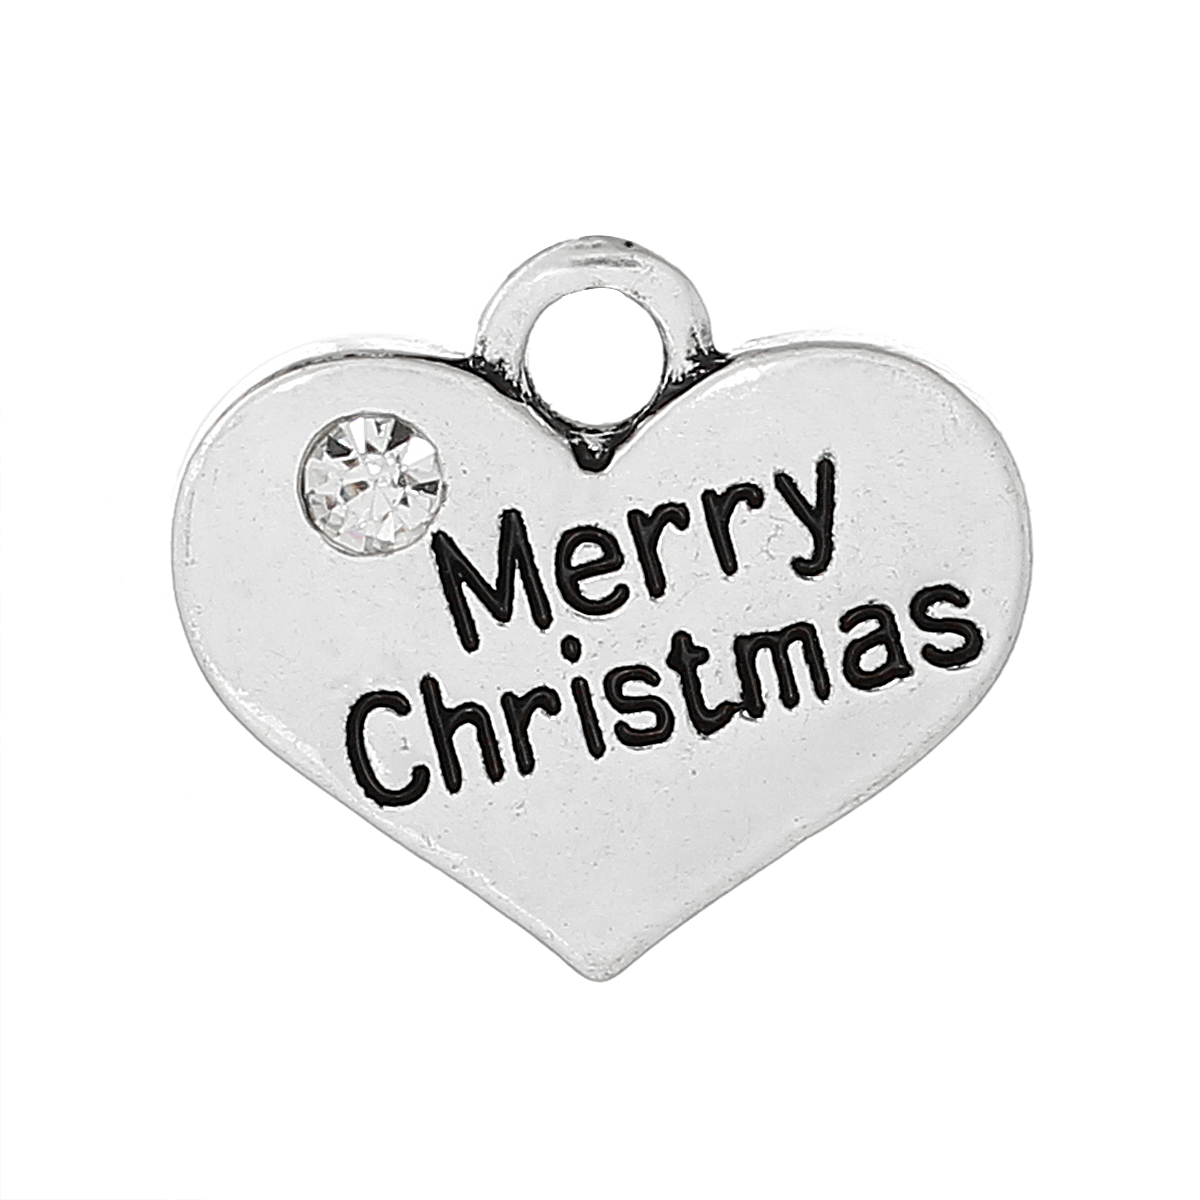 Antique silver merry christmas heart charm pendant